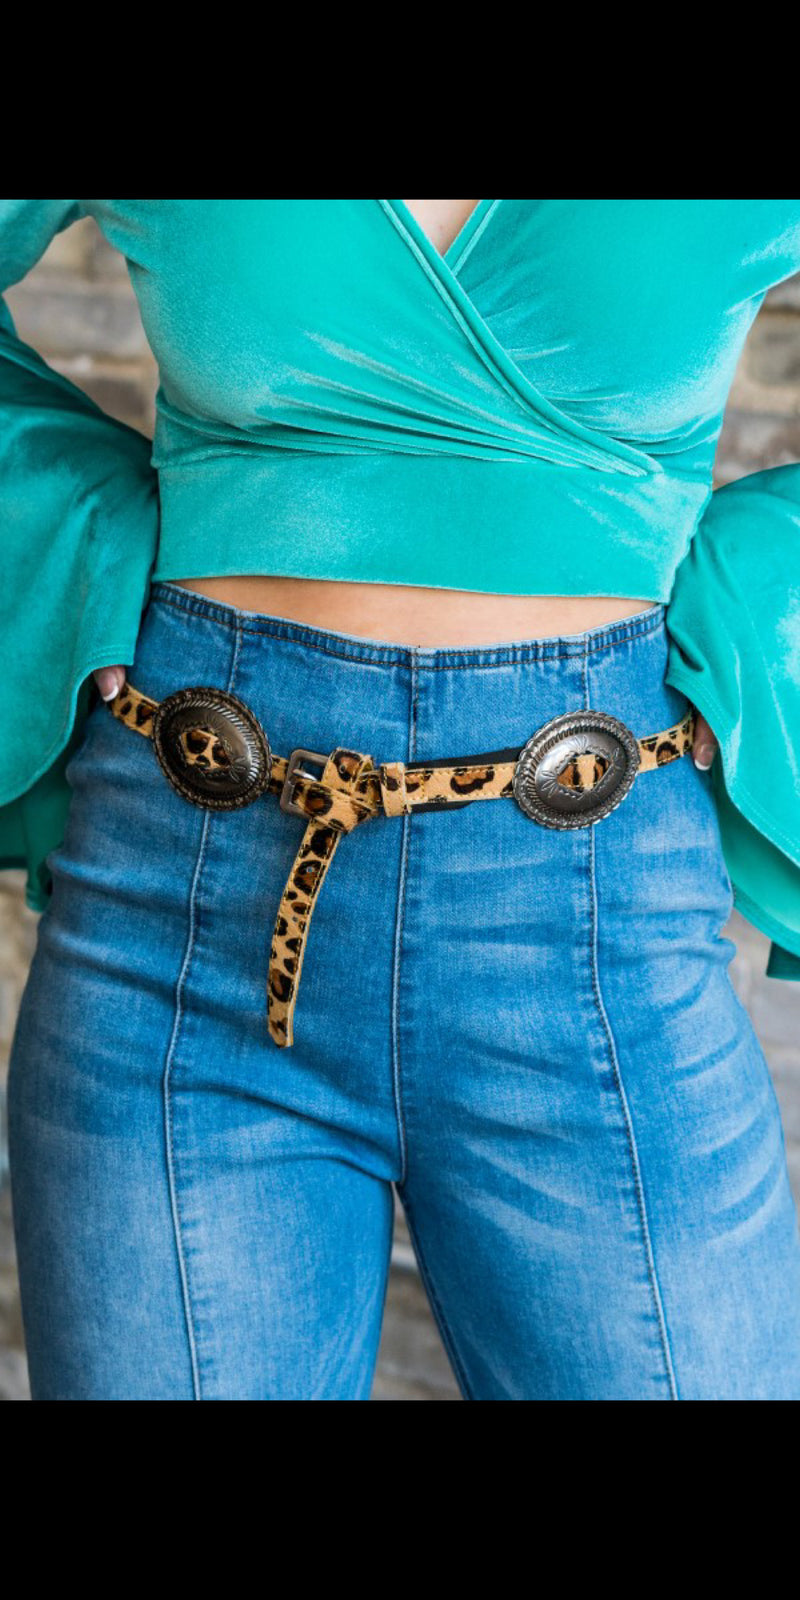 Ponderosa Leopard Concho Belt - Also in Plus Size